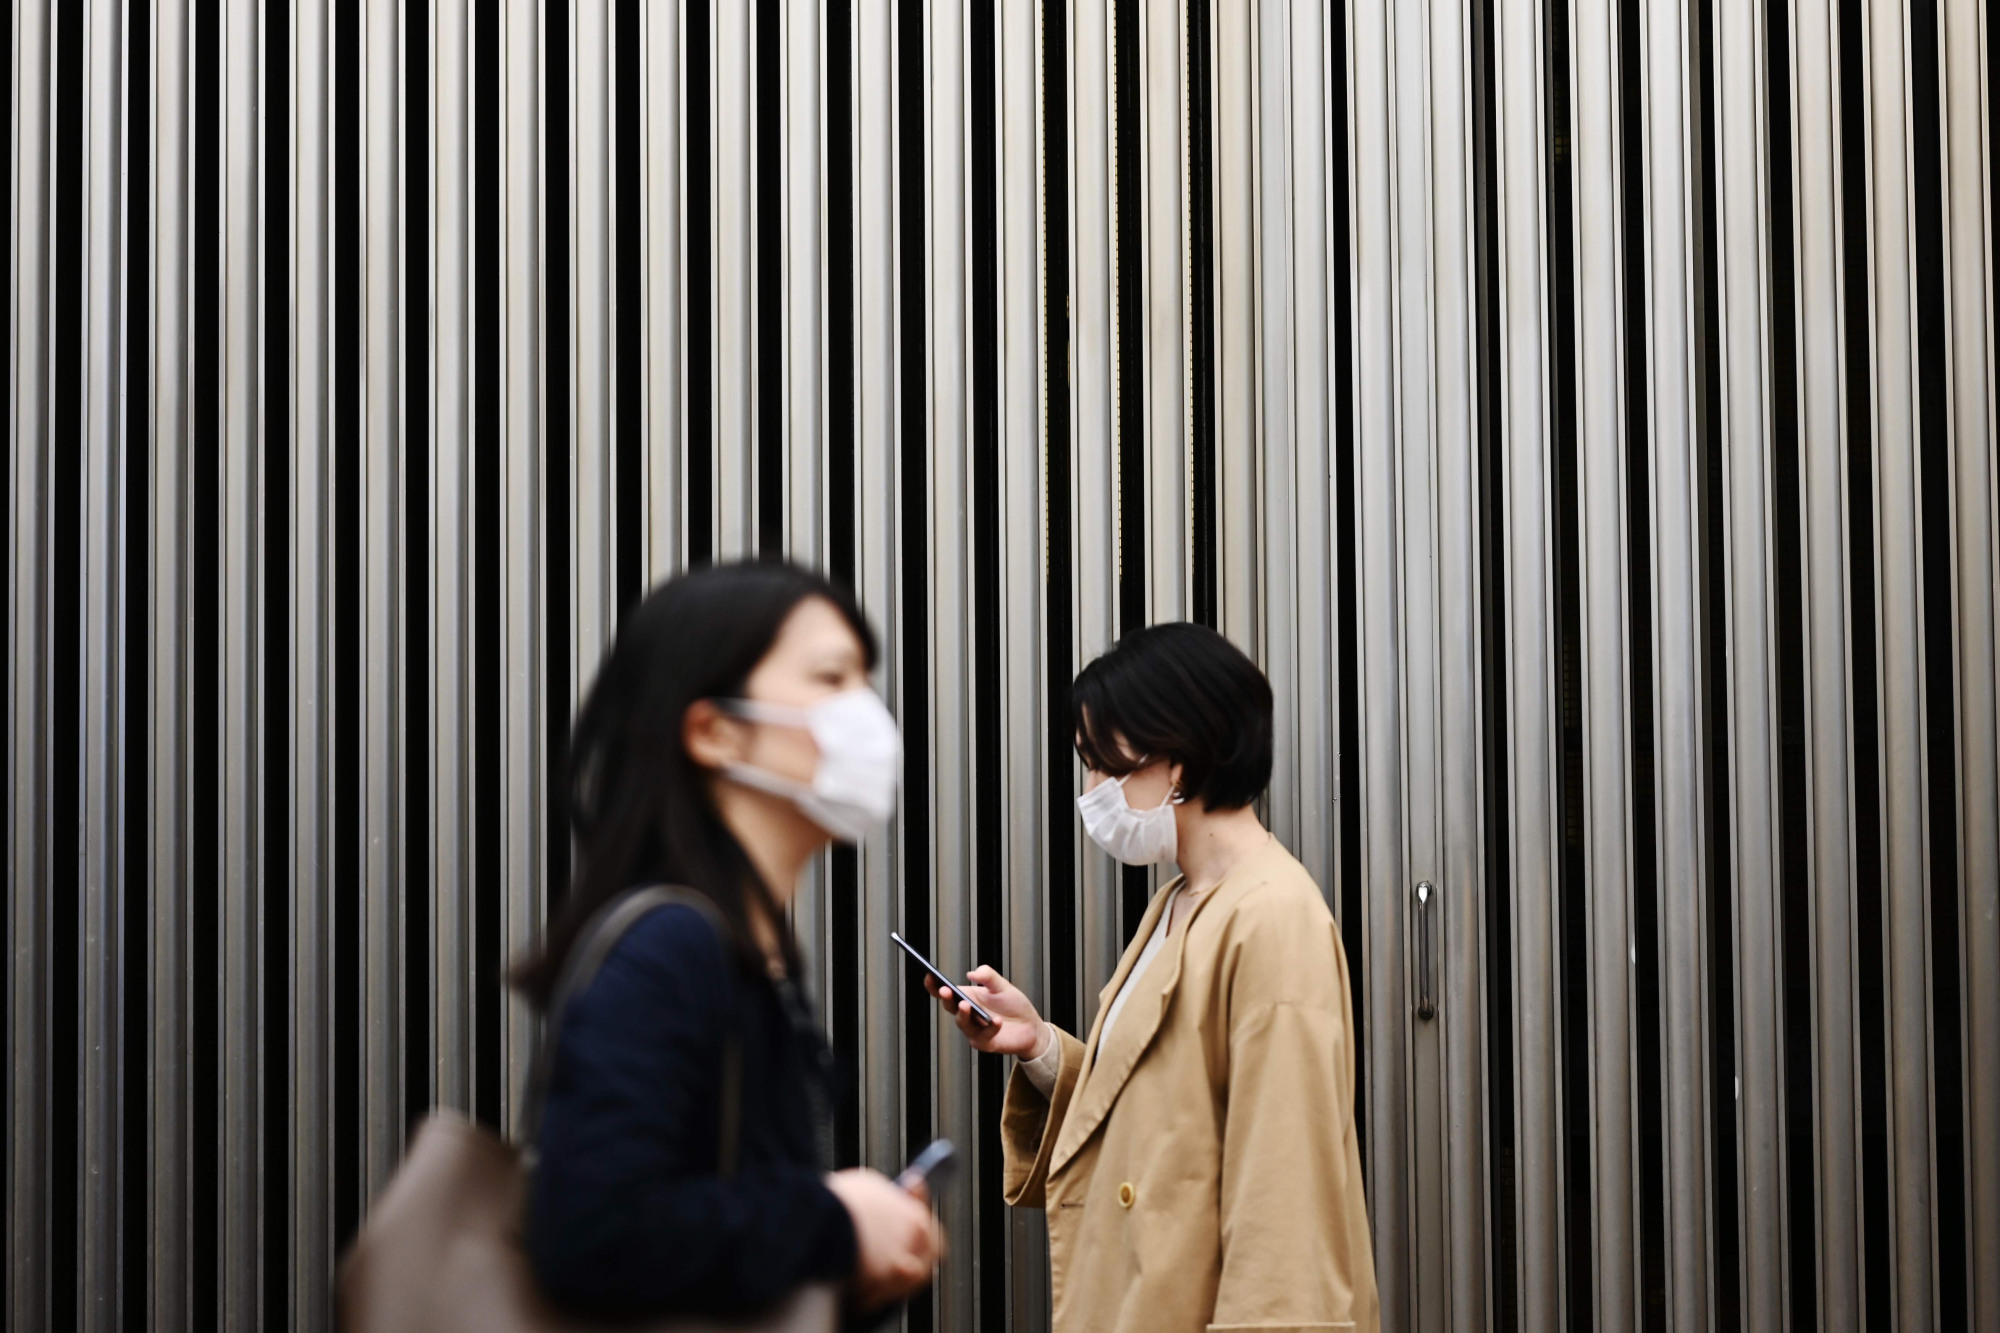 People wear face masks amid concerns over COVID-19 in Tokyo's Yurakucho district on Wednesday. Health experts have been puzzled as to why Japan is still seeing a relatively low number of infections from the deadly virus outbreak so far. | AFP-JIJI